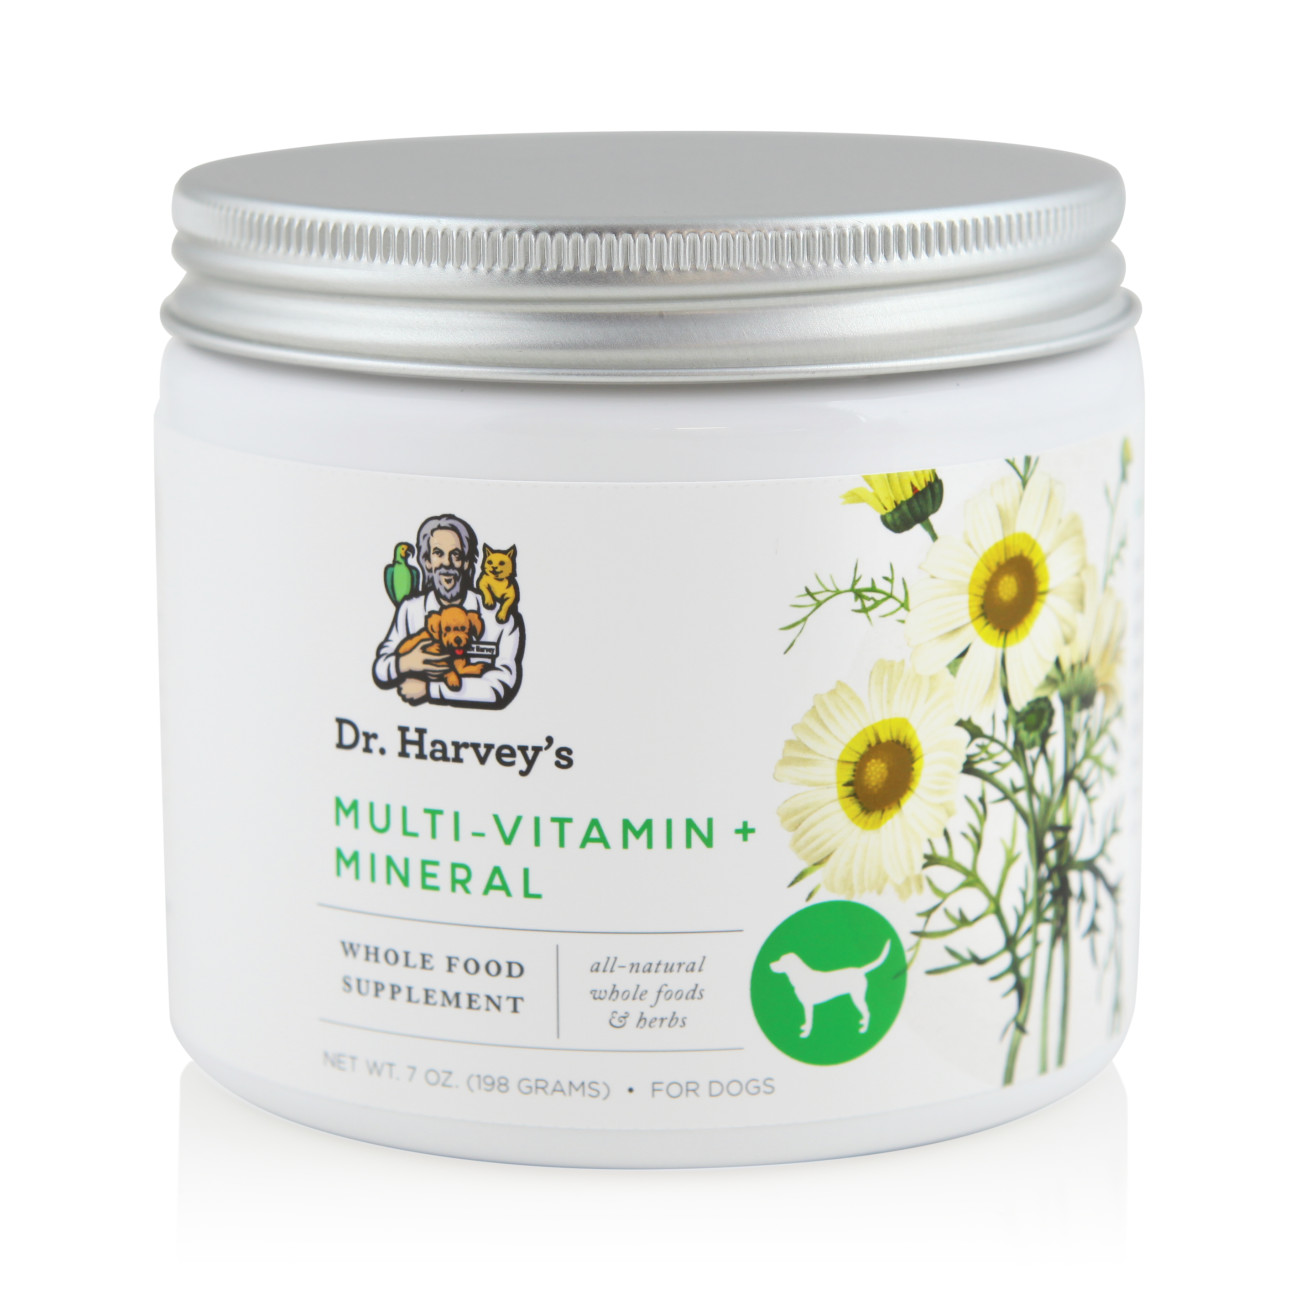 Natural Whole food Herbal Multi-Vitamin and Mineral Supplement